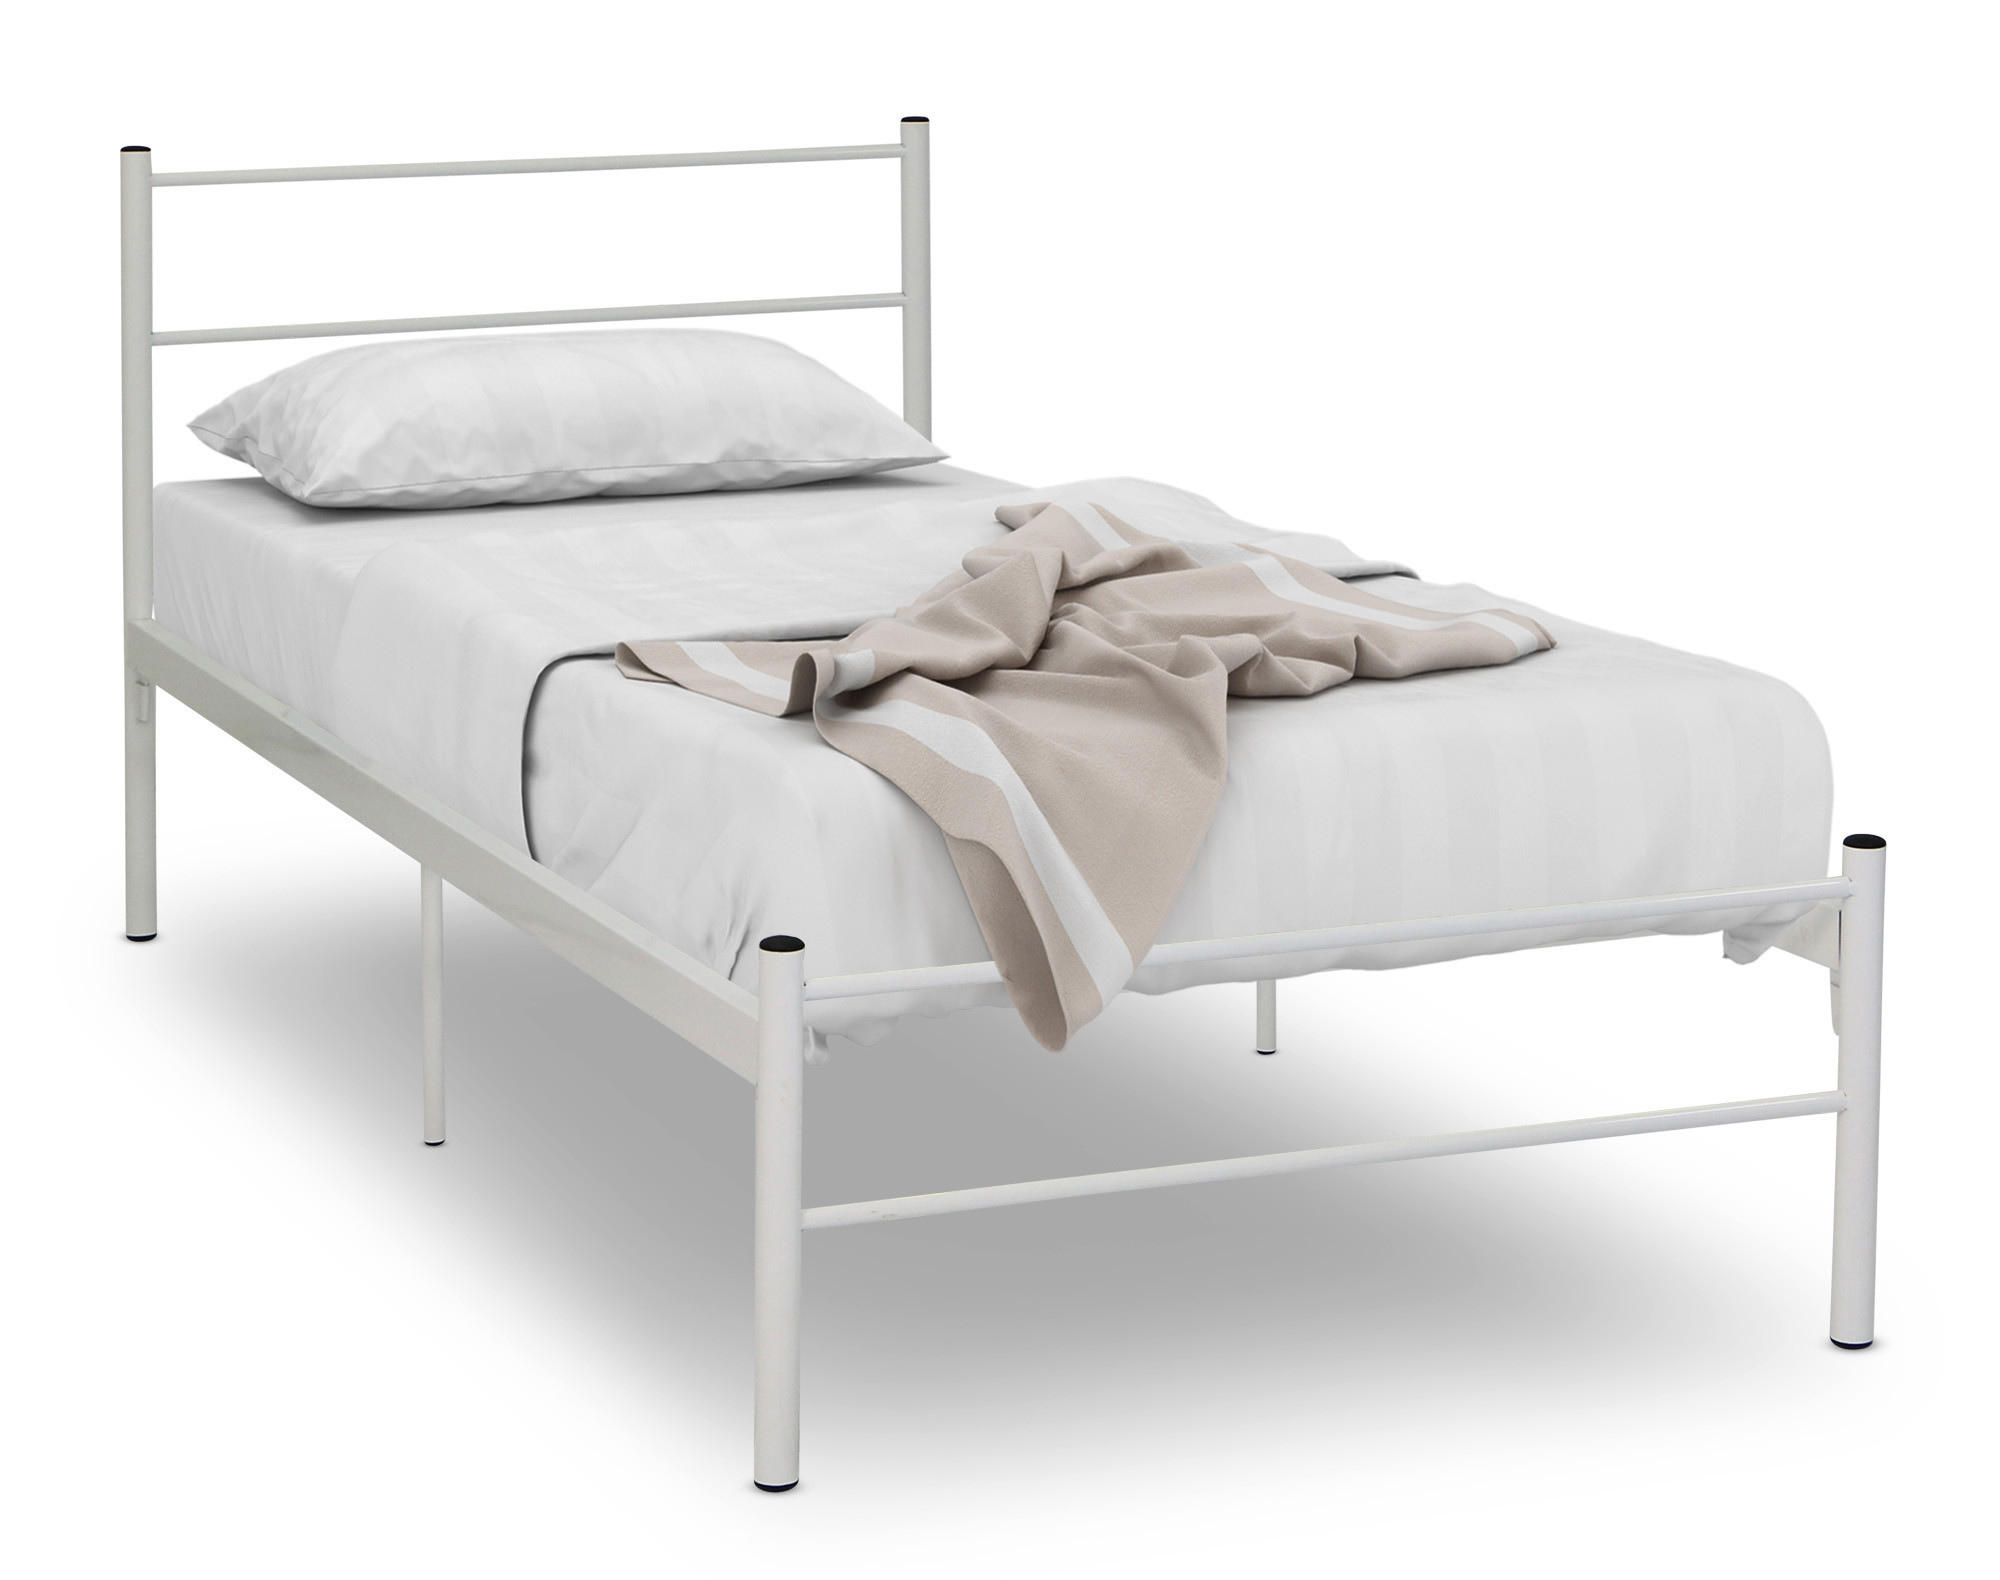 Steel Bed Frames Queen Metal Bed Frames Queen Size Extra: Austin Metal Bed Frame Single Size